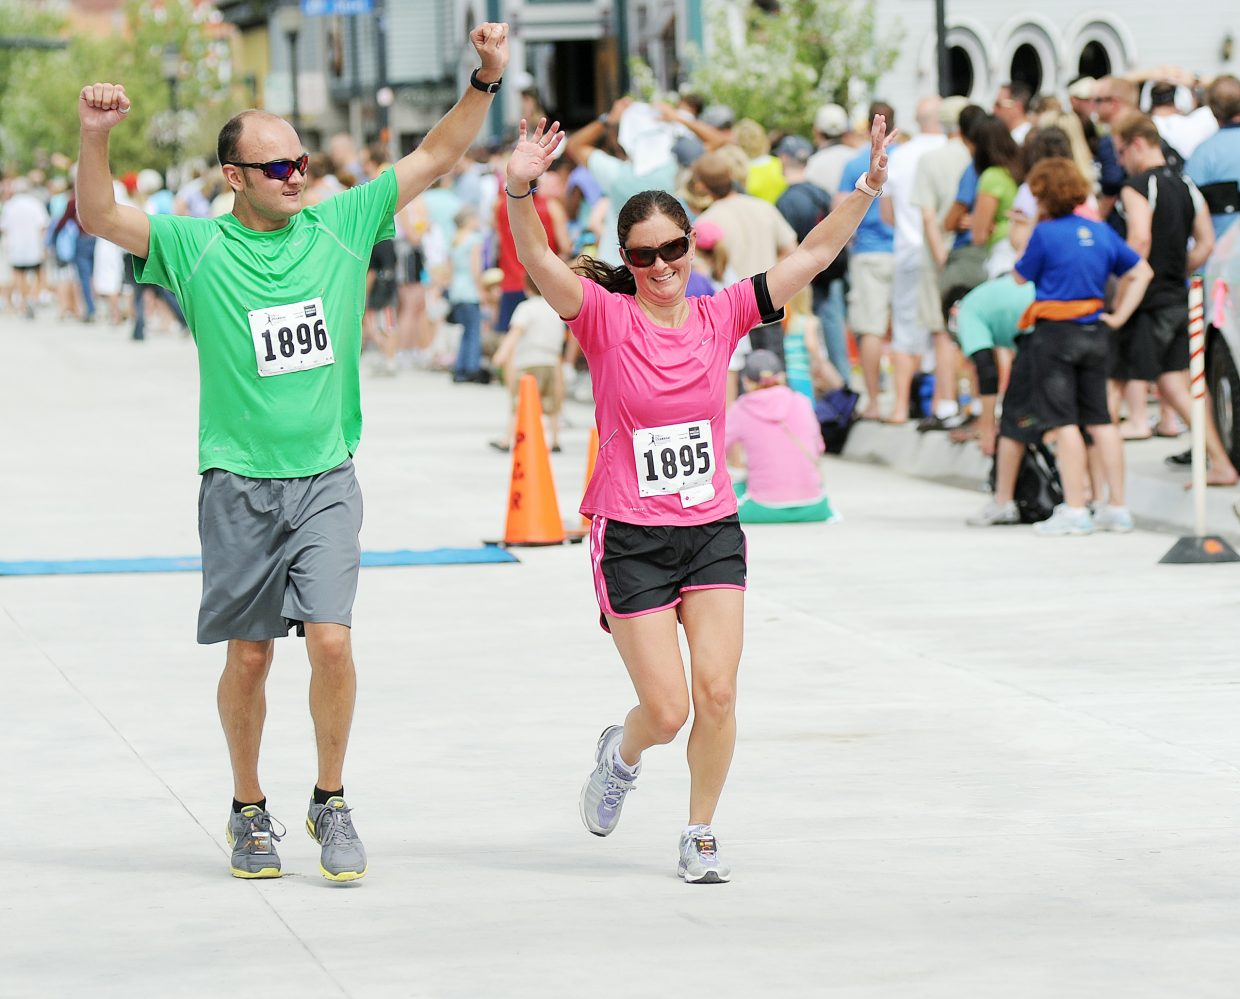 Brandon Doza and Michelle Quittner, both of Breckenridge, soak in their finish line moment during the half marathon Sunday at the Steamboat Marathon.